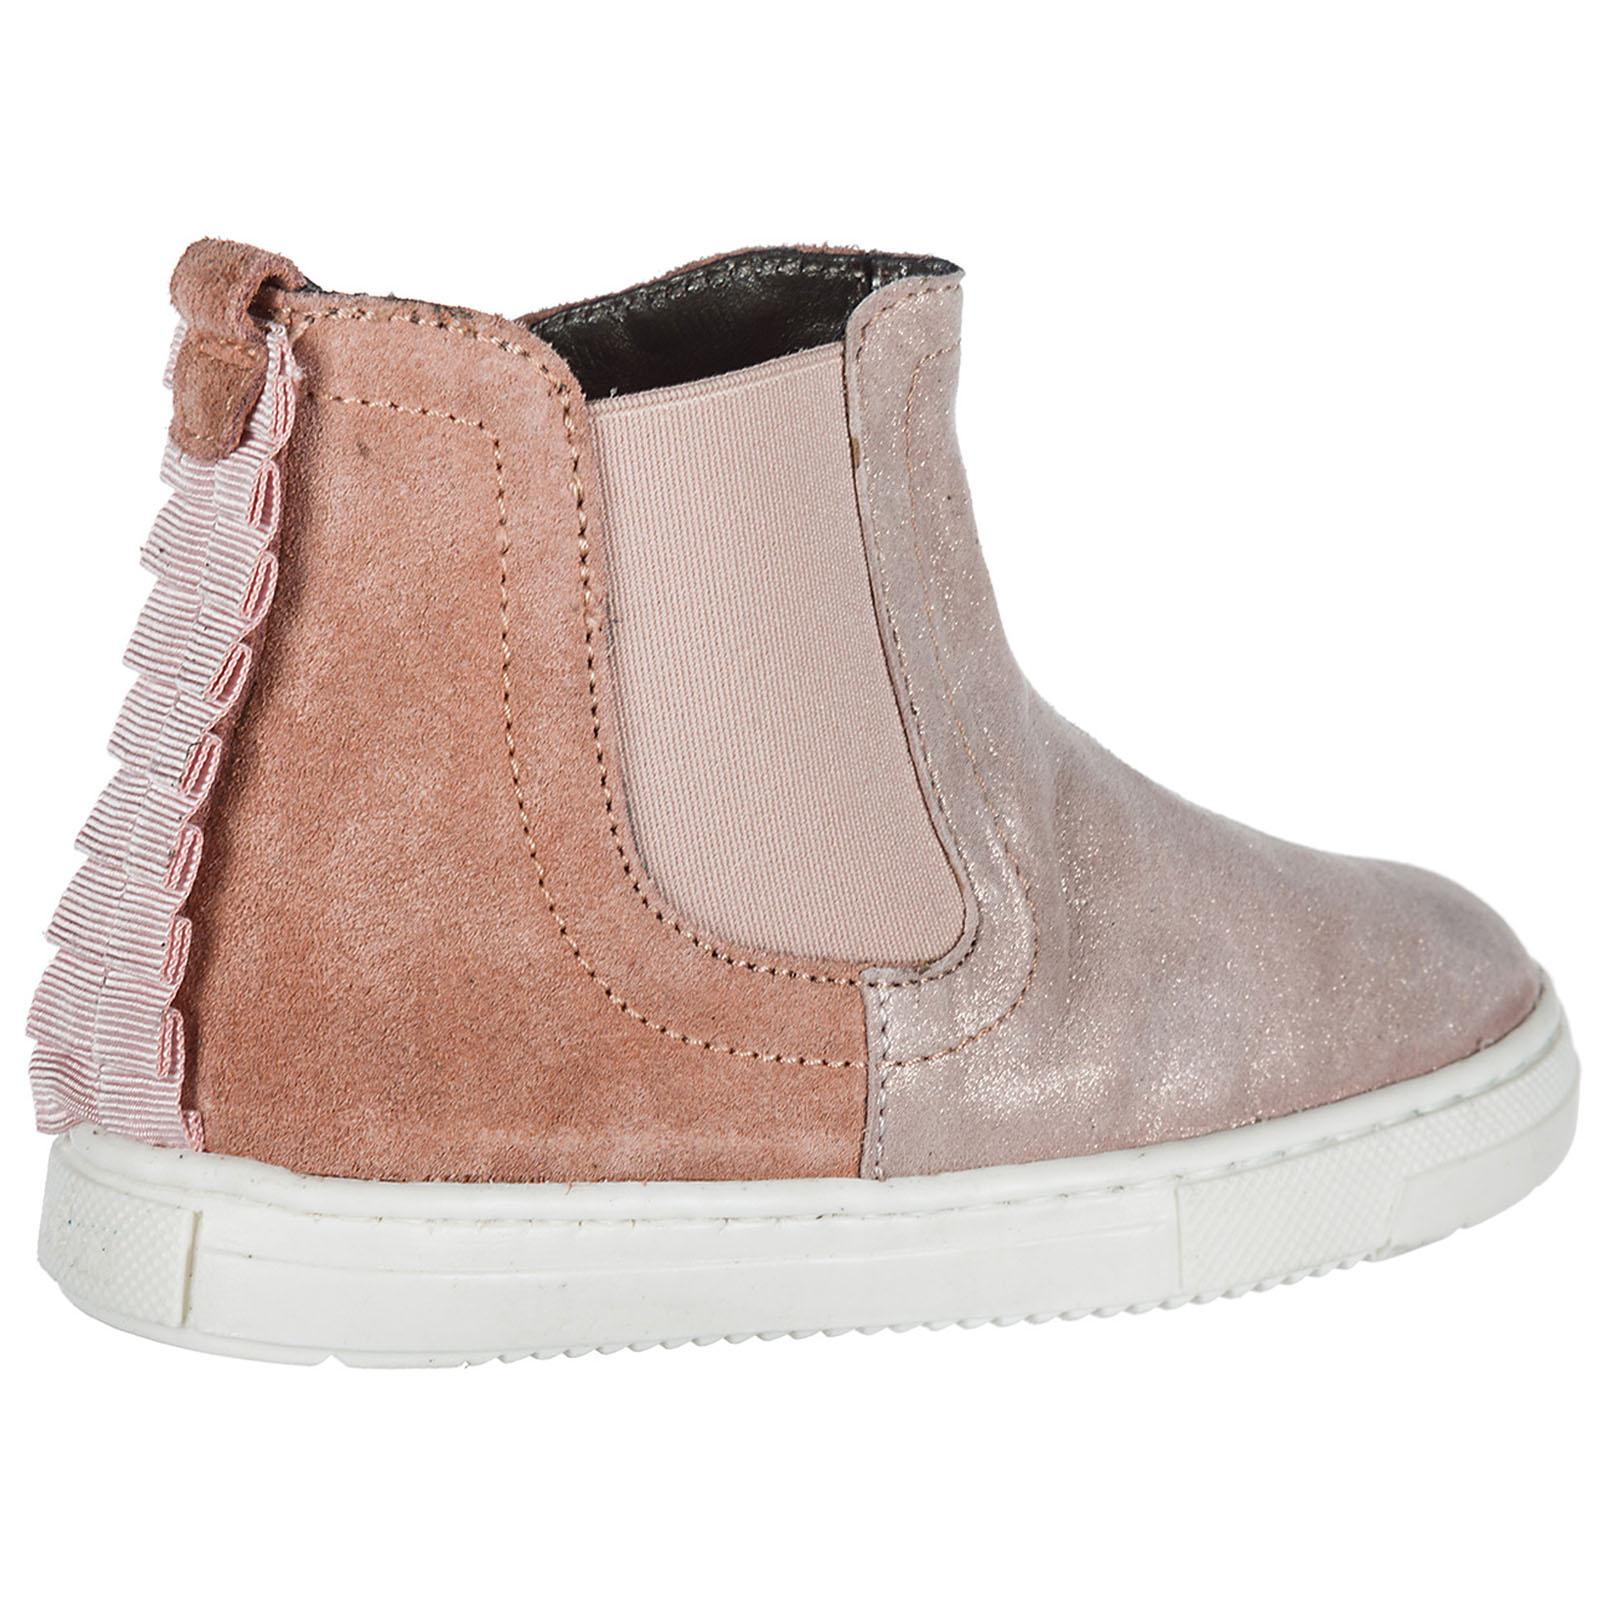 cb6b1c657b4 Women's Girls Shoes Baby Child Boots Suede Leather J336